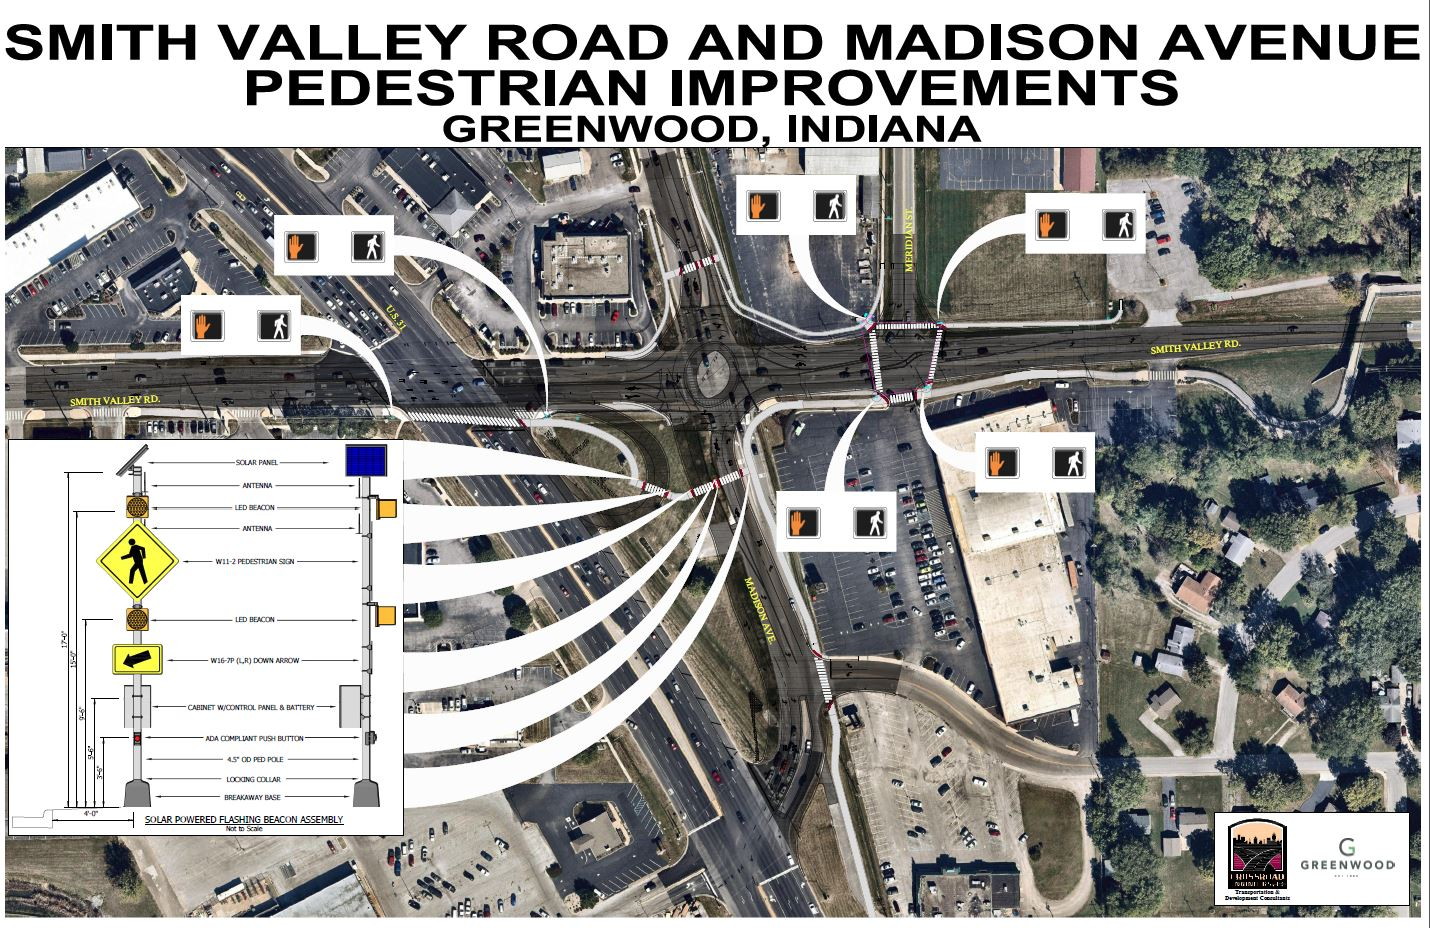 Smith Valley Road/Madison Avenue Pedestrian Improvements